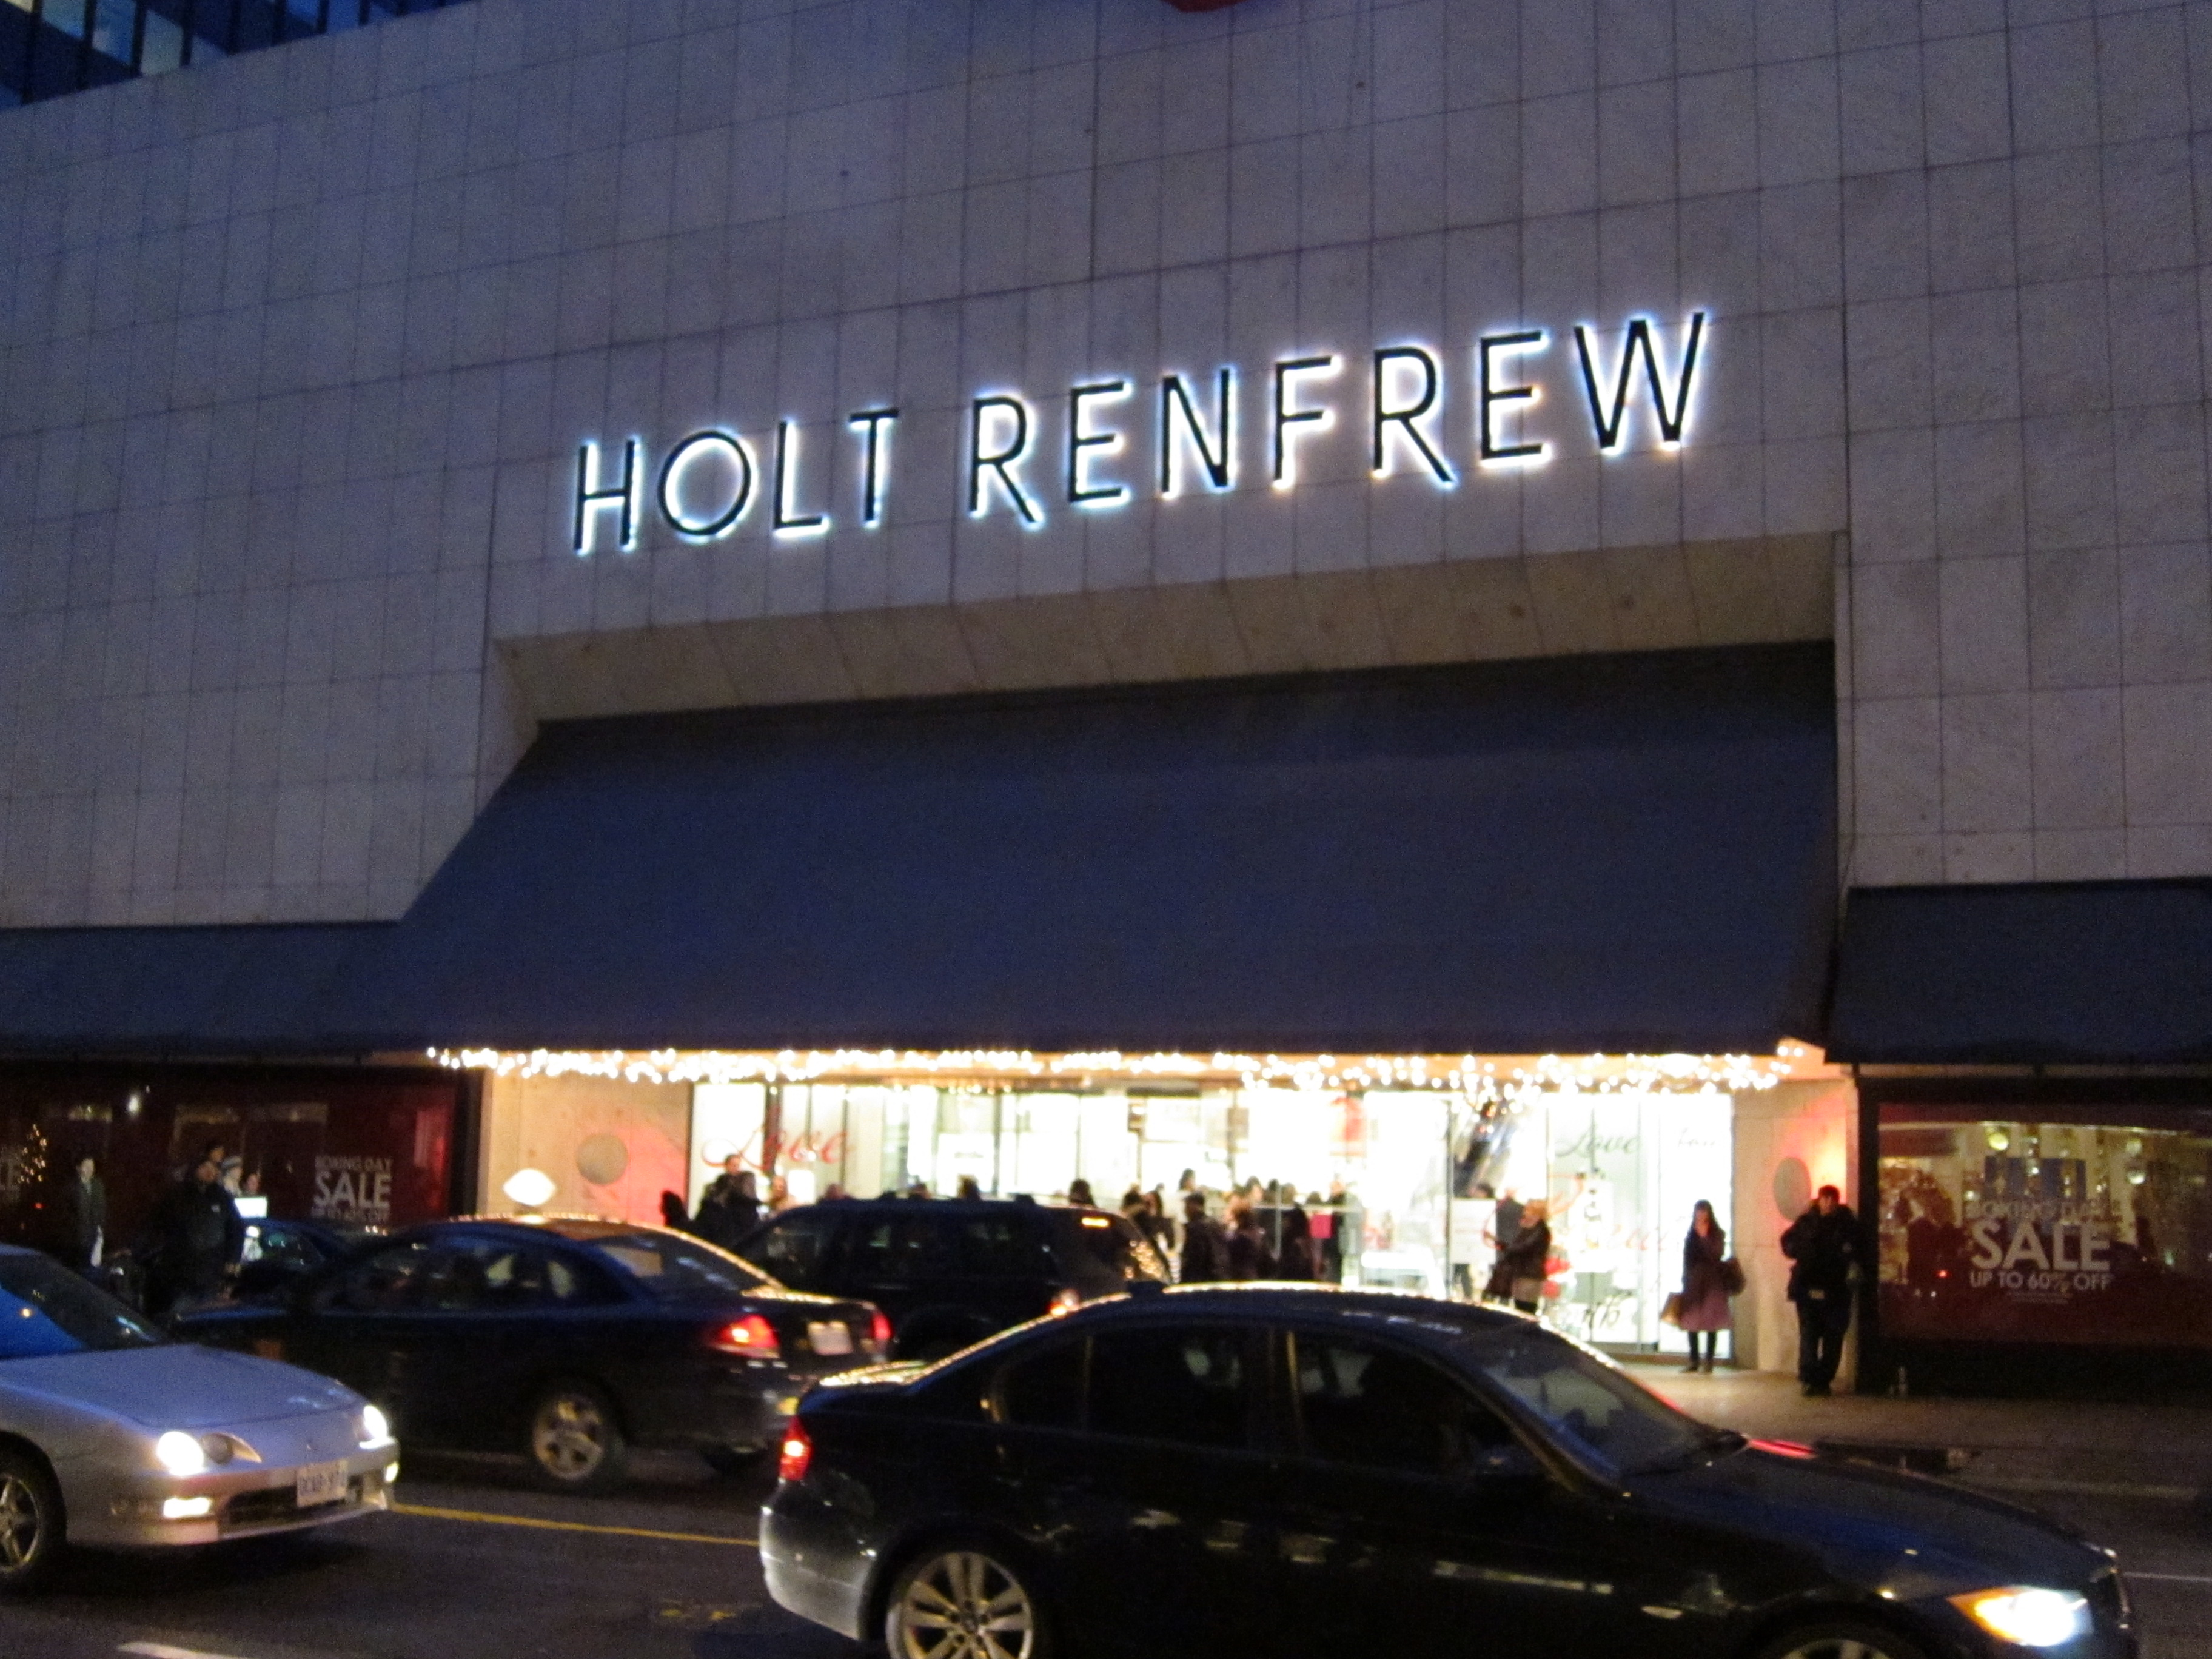 holt renfrew Today's top 231 holt renfrew jobs in canada leverage your professional  network, and get hired new holt renfrew jobs added daily.